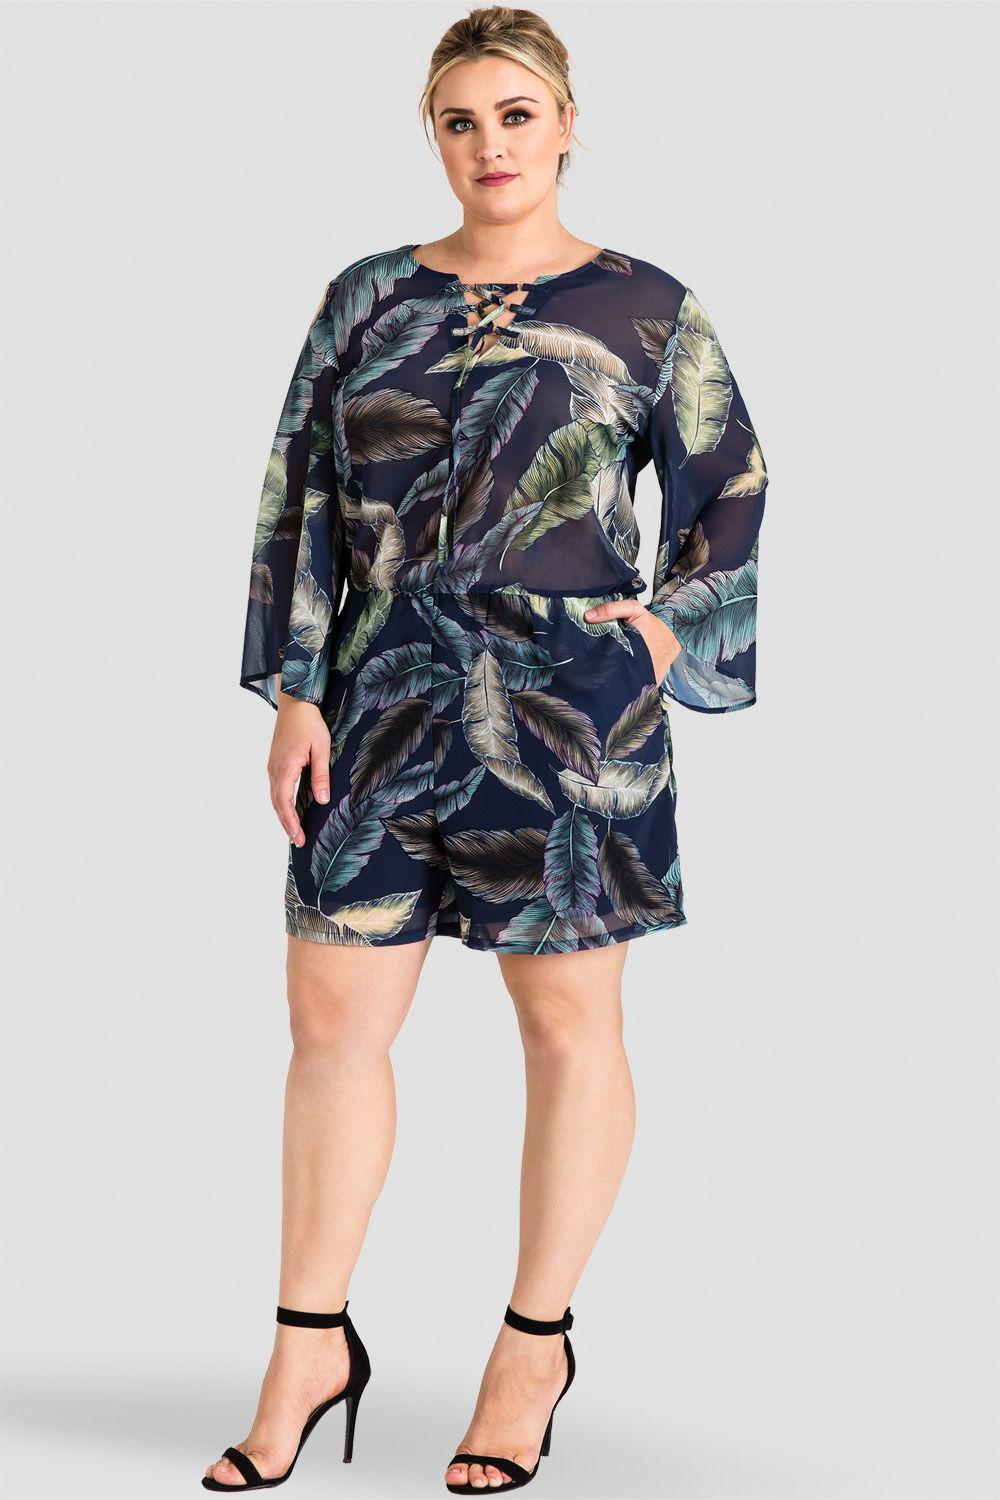 Plus Size Chiffon Barbie Bell Sleeve Lace-Up Romper - Tropical Leaf Print